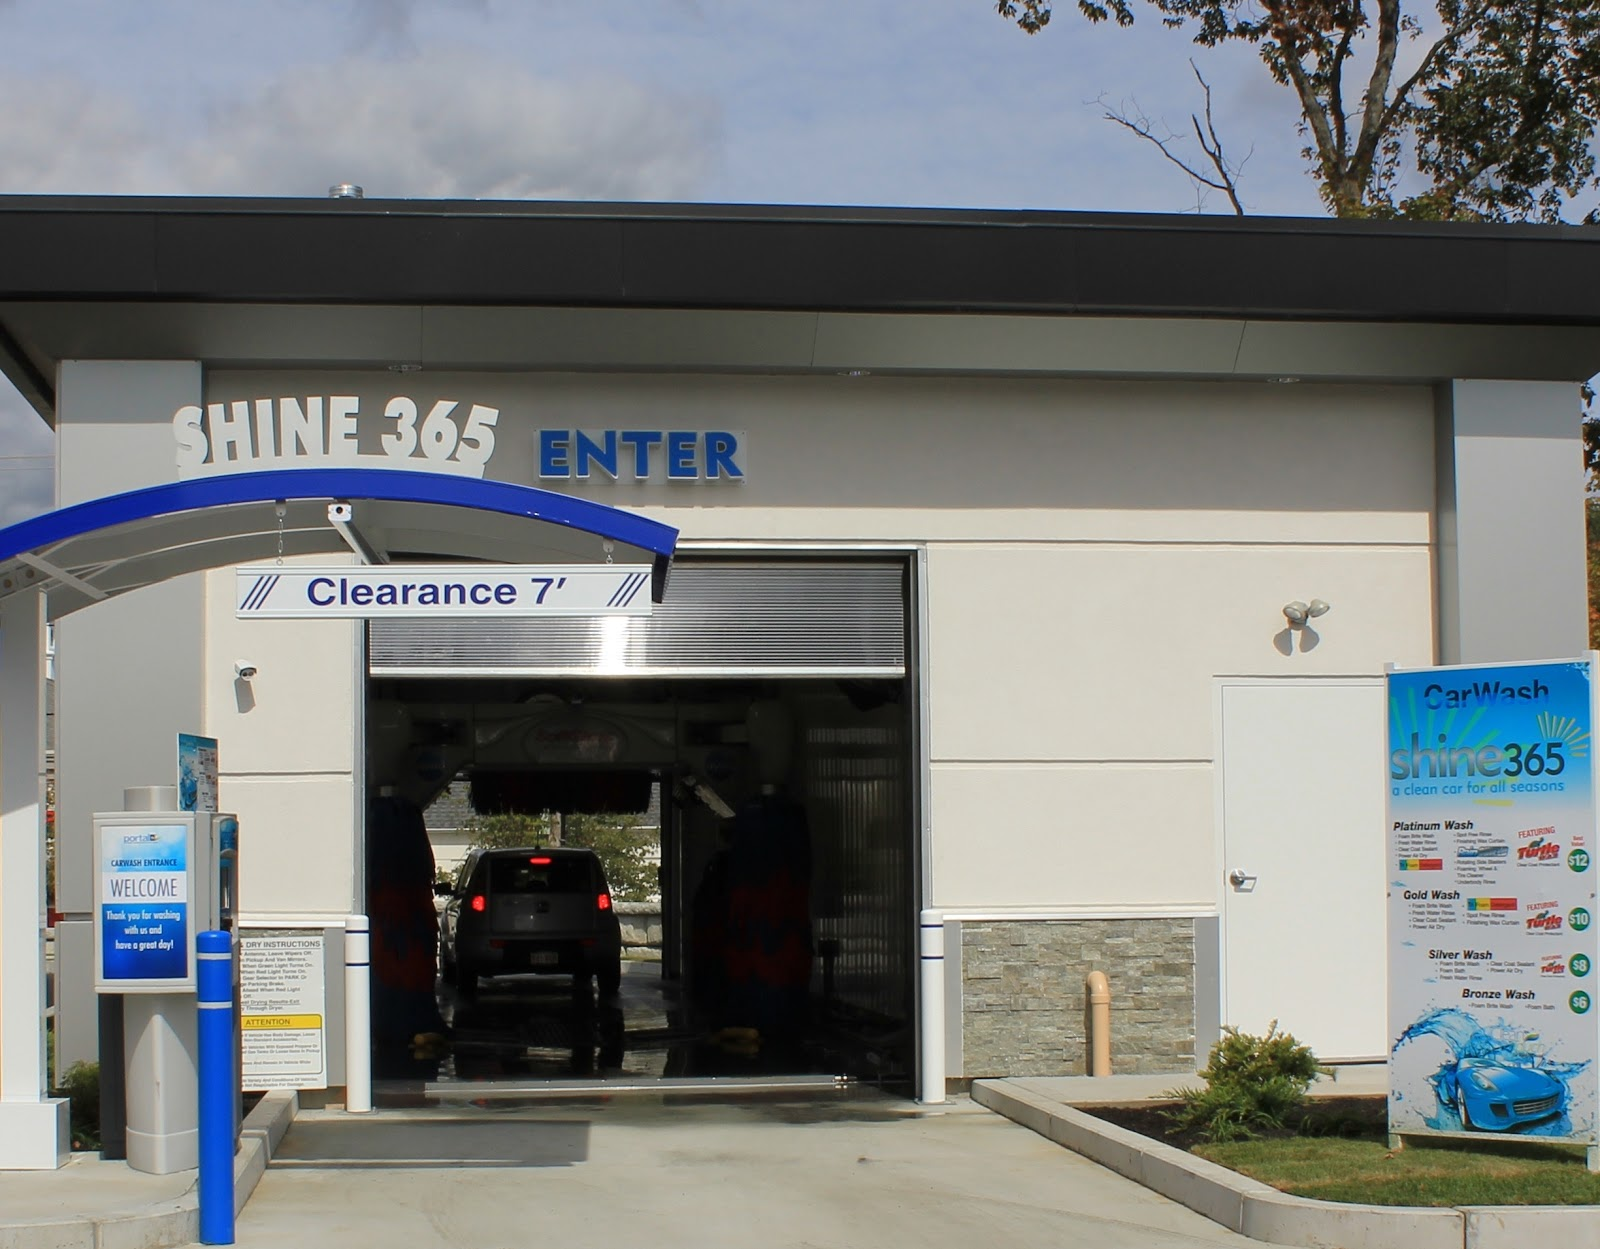 Shine Auto Wash Cumberland Rhode Island Car Wash North Kingstown Quonset on Car Wash Post Road North Kingstown Ri